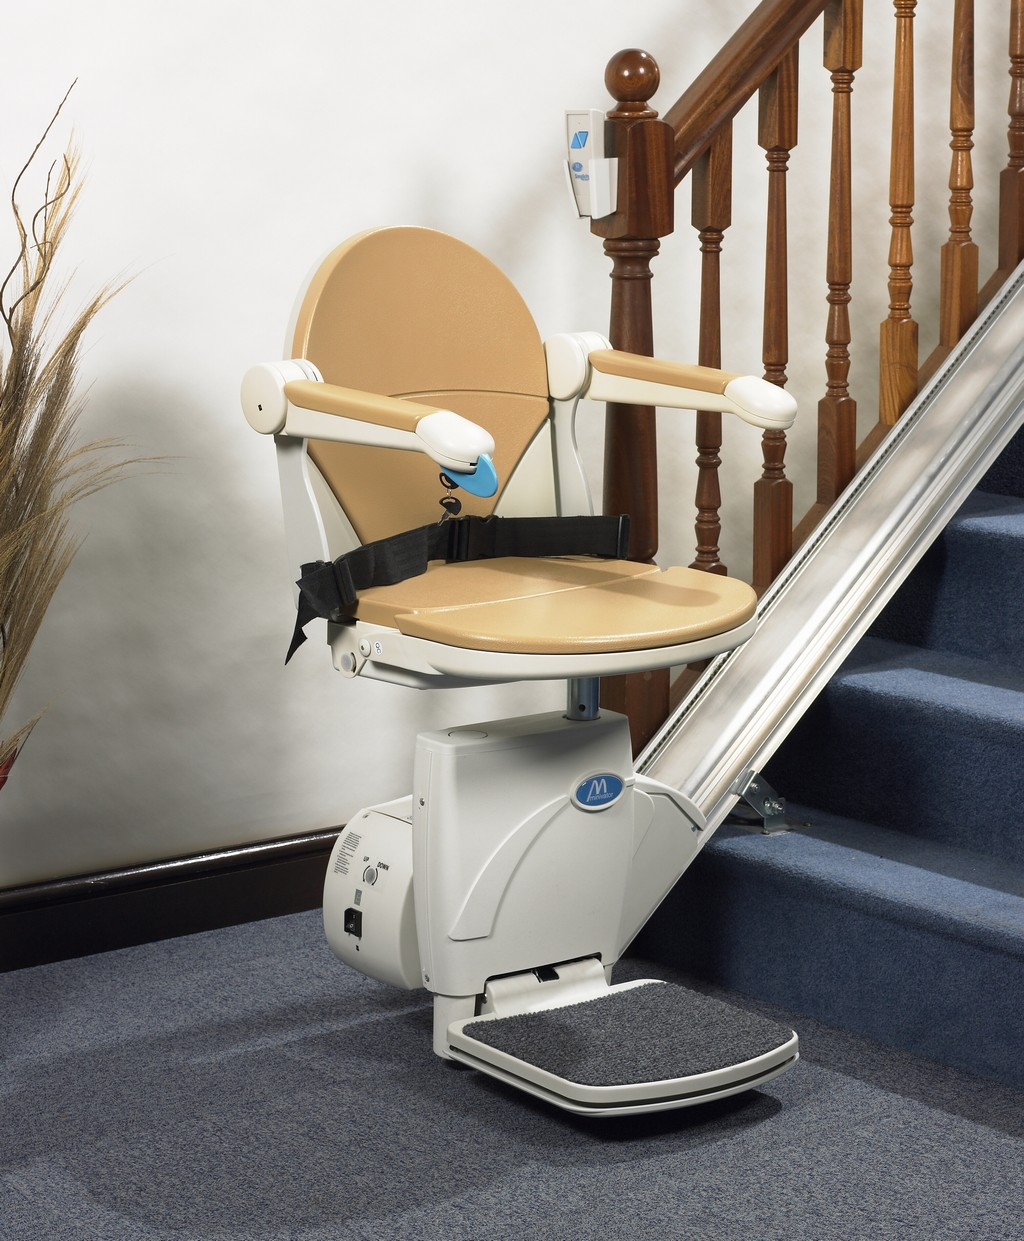 concord stair lift chair repair, small inexpensive stair lift, pride stairlifts, stair lifts new york state